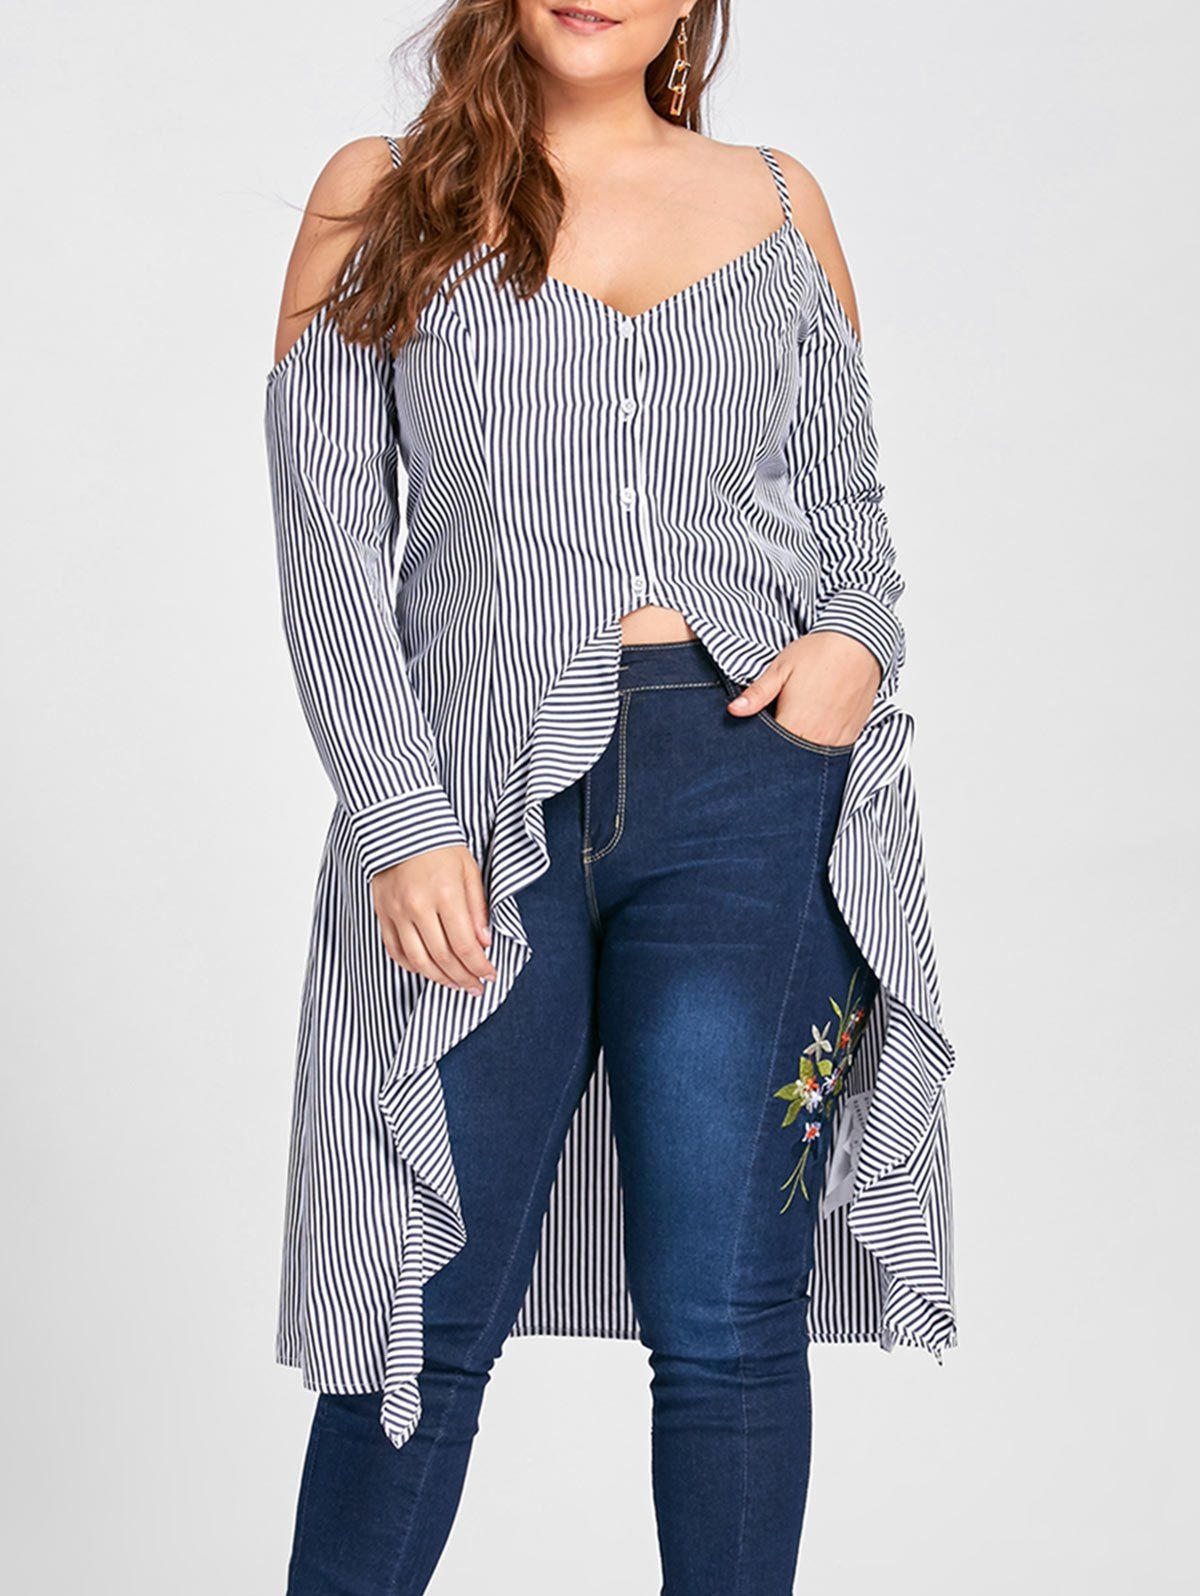 9b047557d2ef23 rosegal Cold Shoulder Blouse, Plus Size Blouses, Blouse Online, Long A Line,